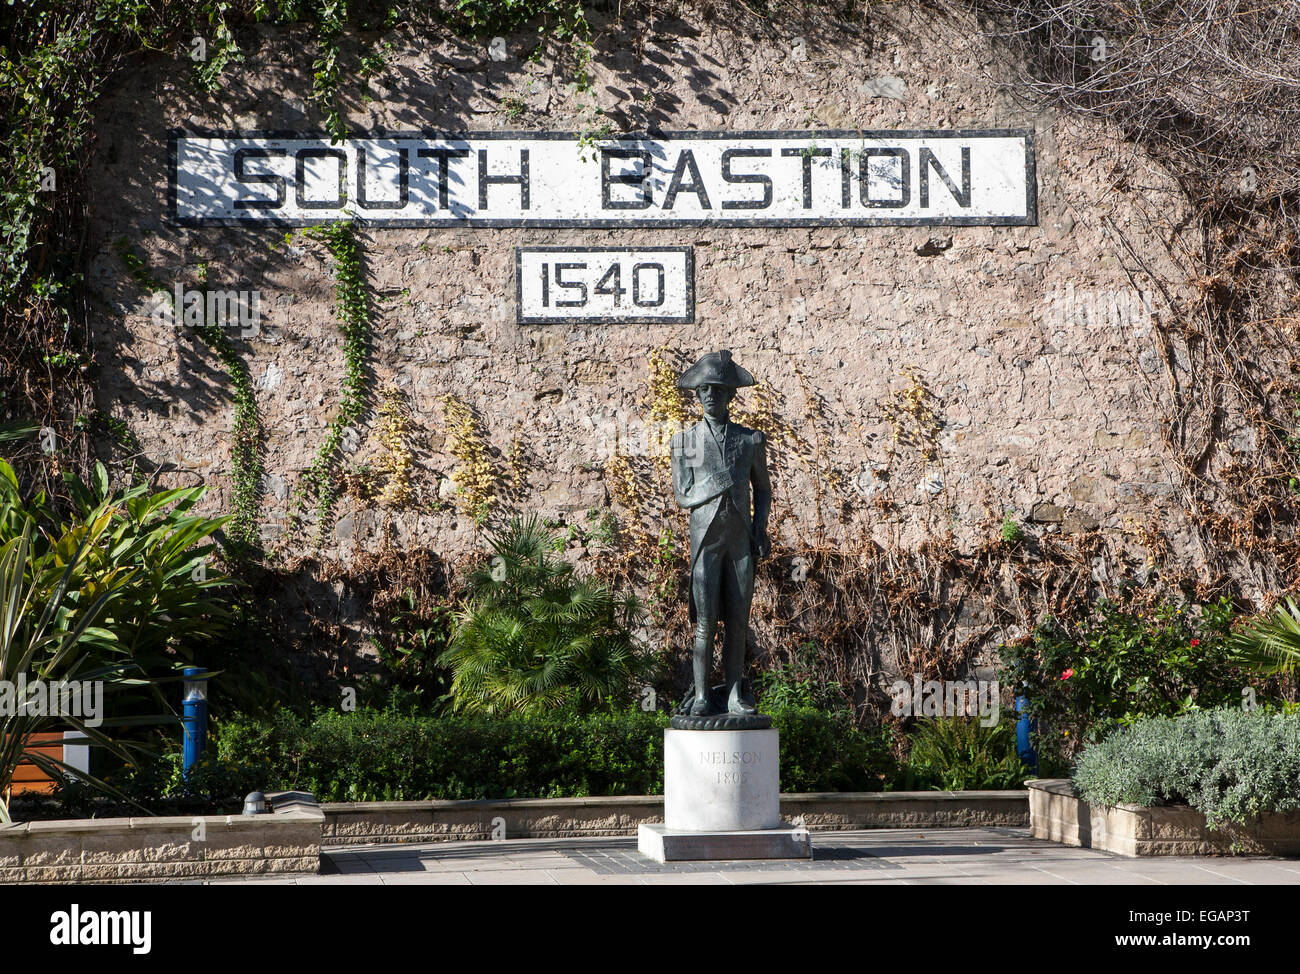 Statue of Admiral Lord Nelson at South Bastion, Gibraltar, British territory in southern Europe - Stock Image